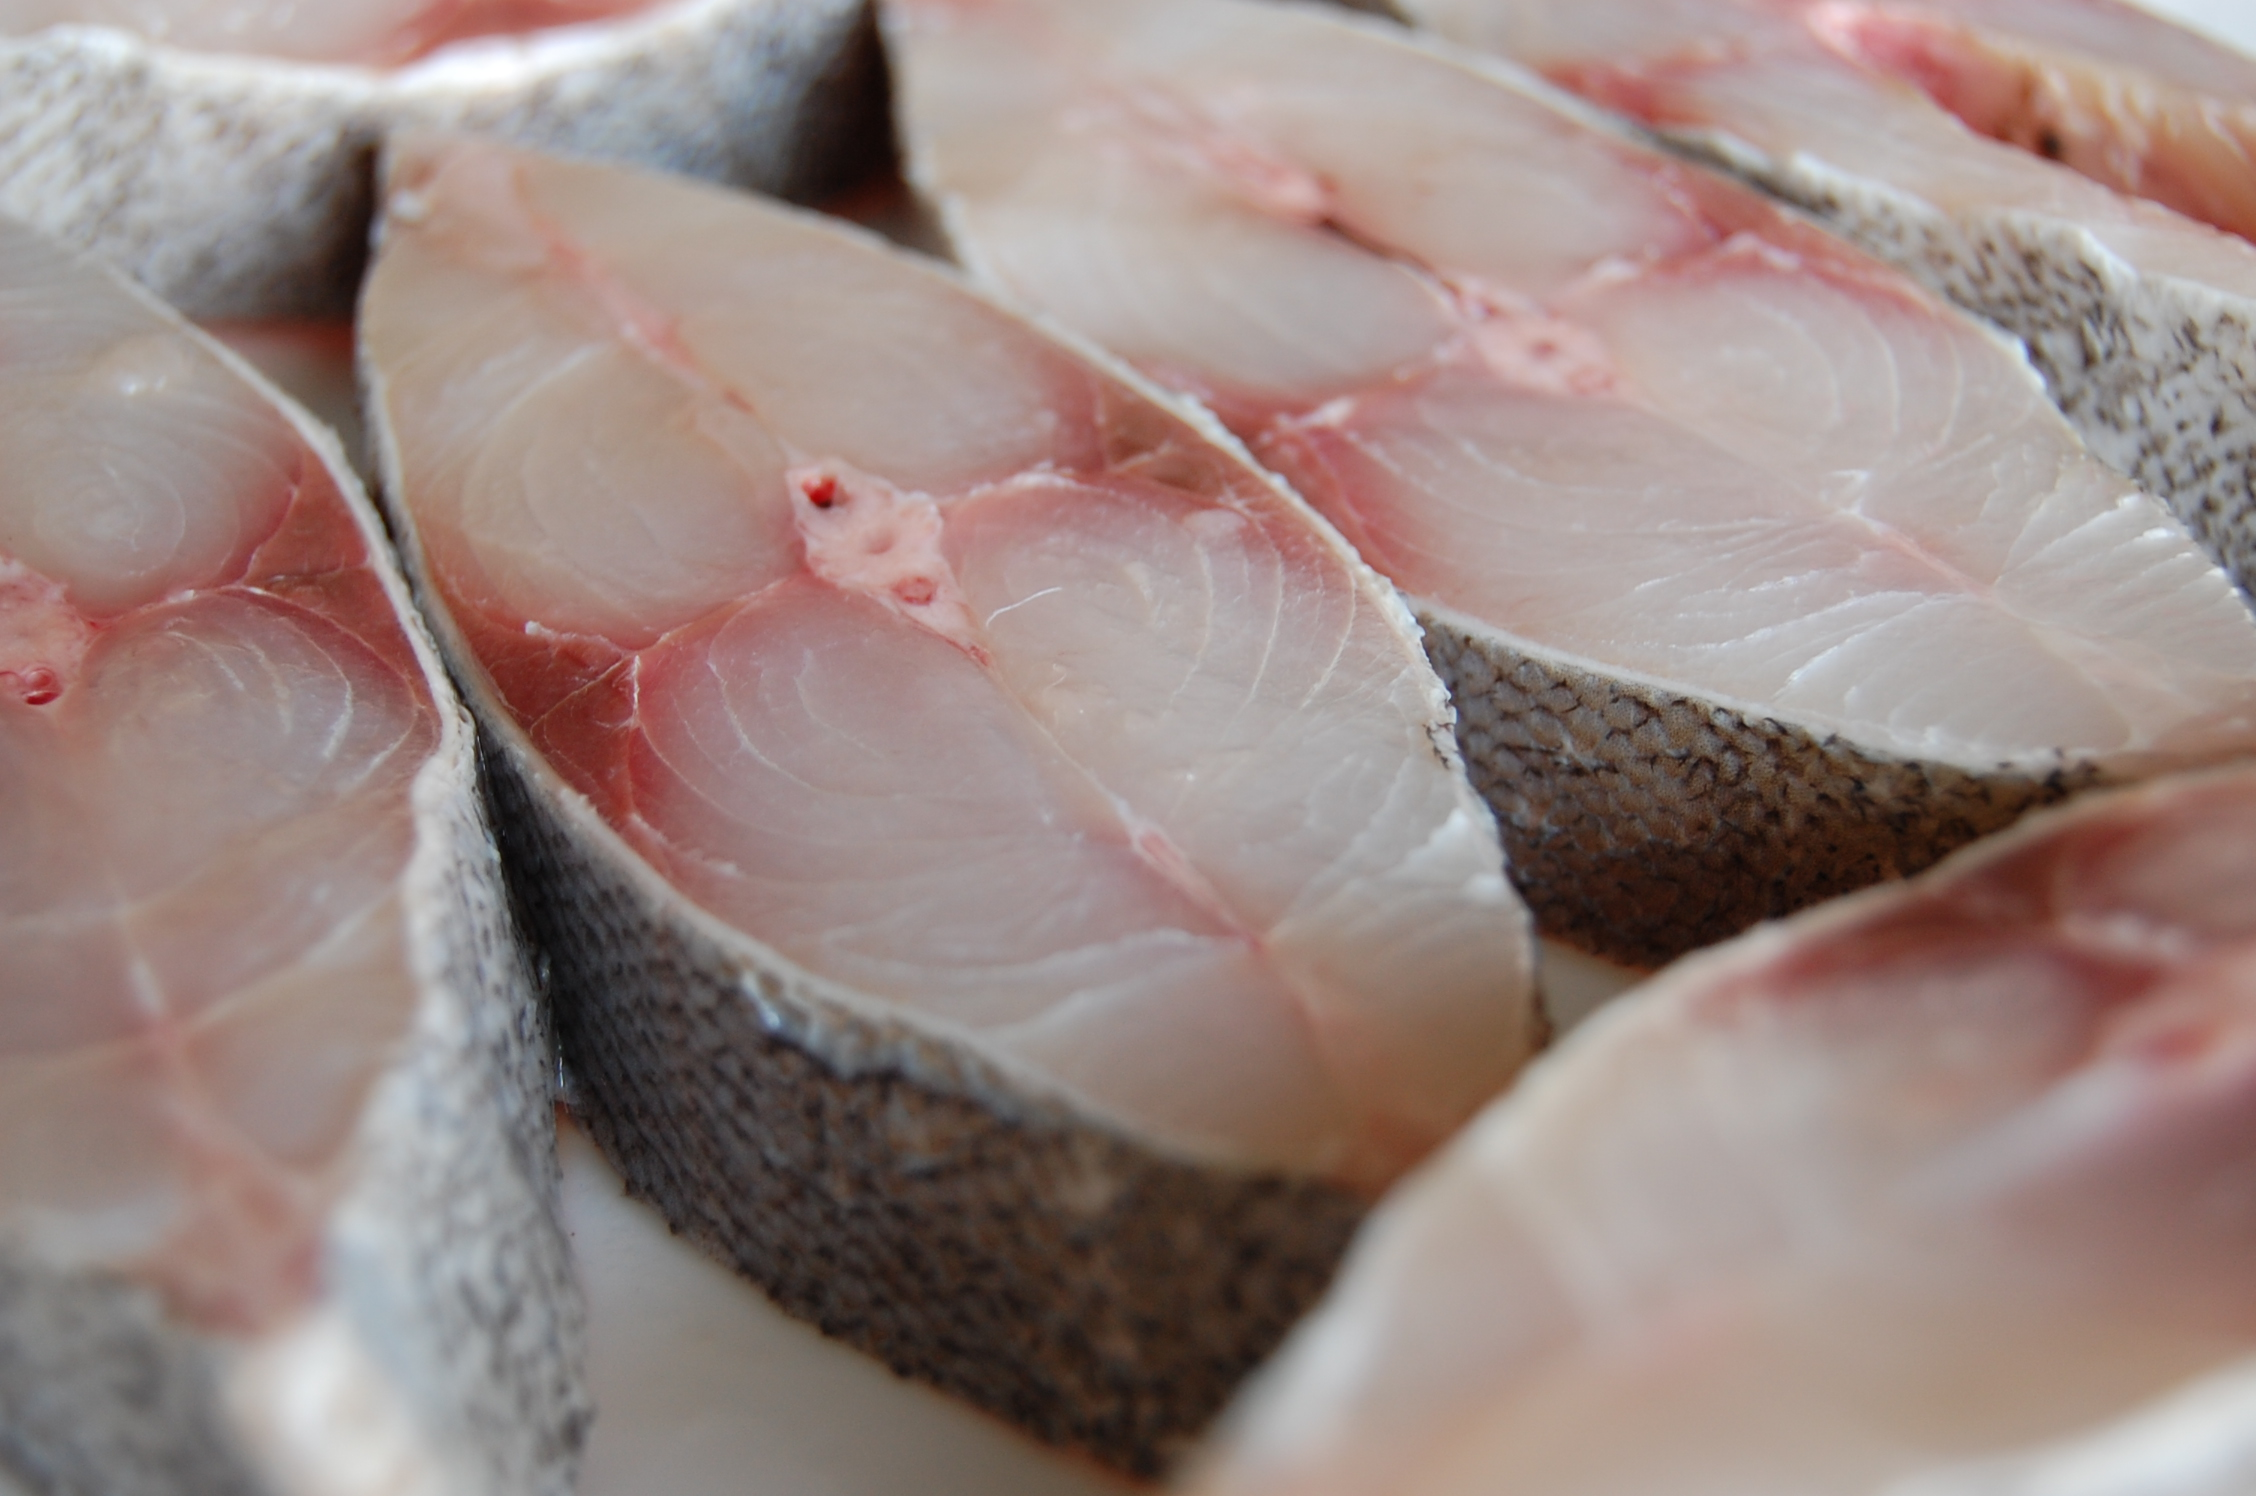 pomfret online dating Buy fish online from a delectable range of salmon, catla, black pomfret and many more types of fishes, prawns and crabs.